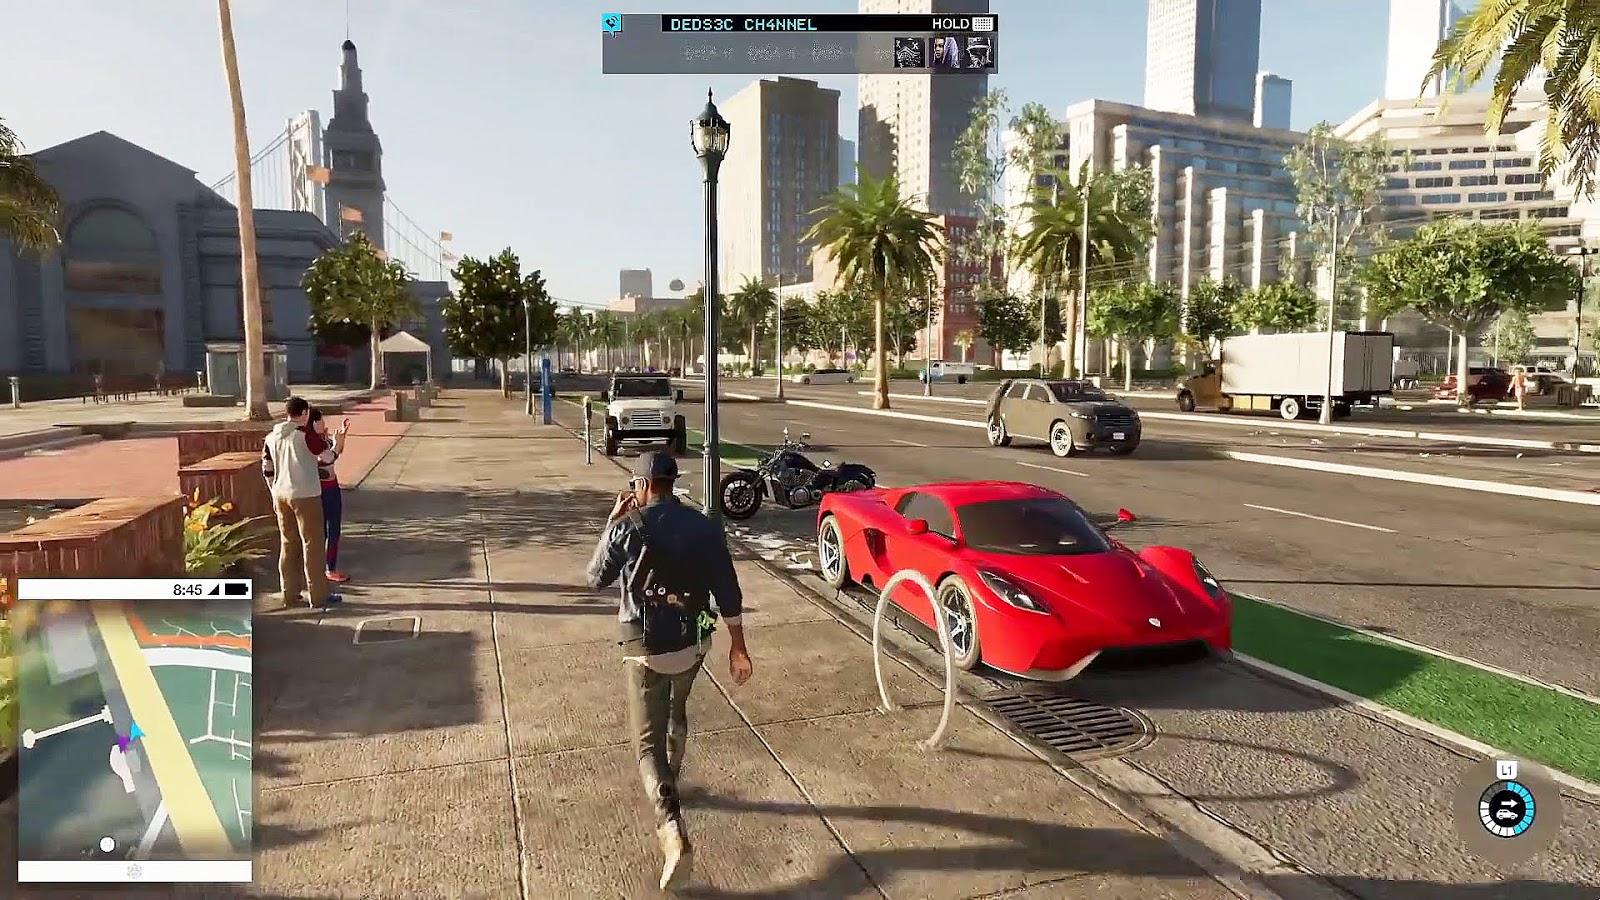 download watch dogs 2 deluxe digital gold edition full version google drive kumpulbagi r.g mechanics repack by